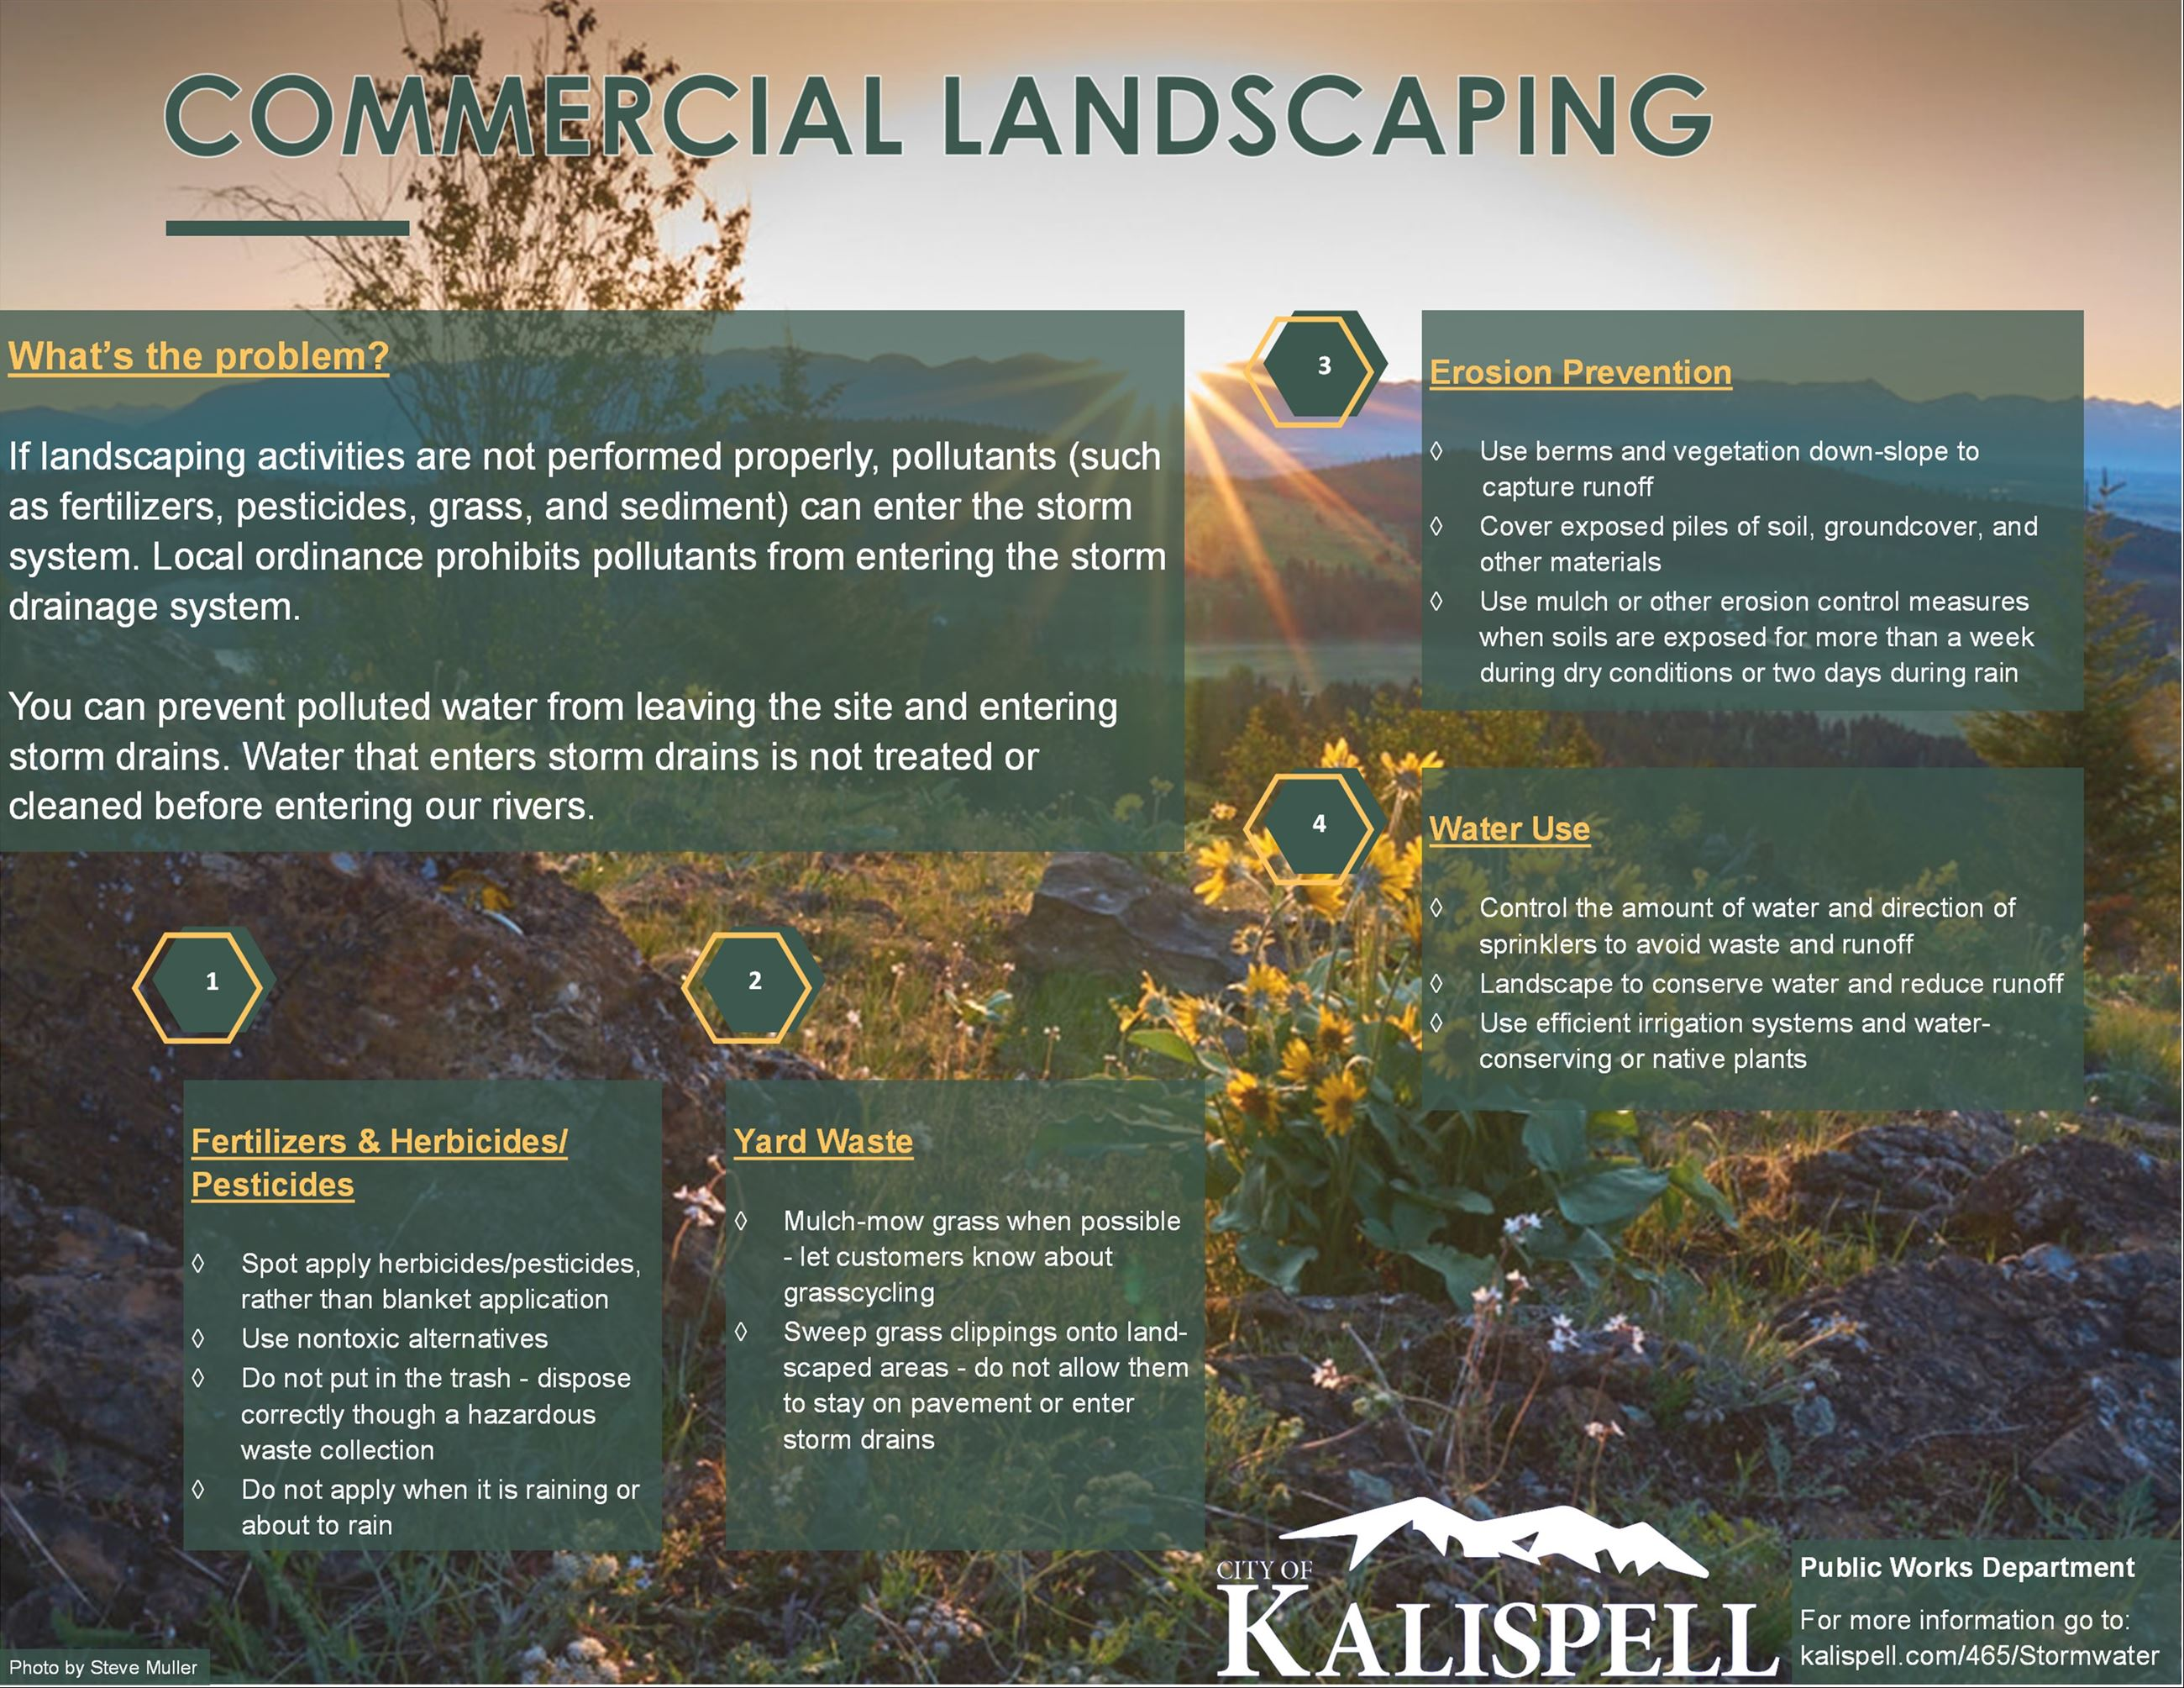 Commercial Landscaping Information and Best Practices